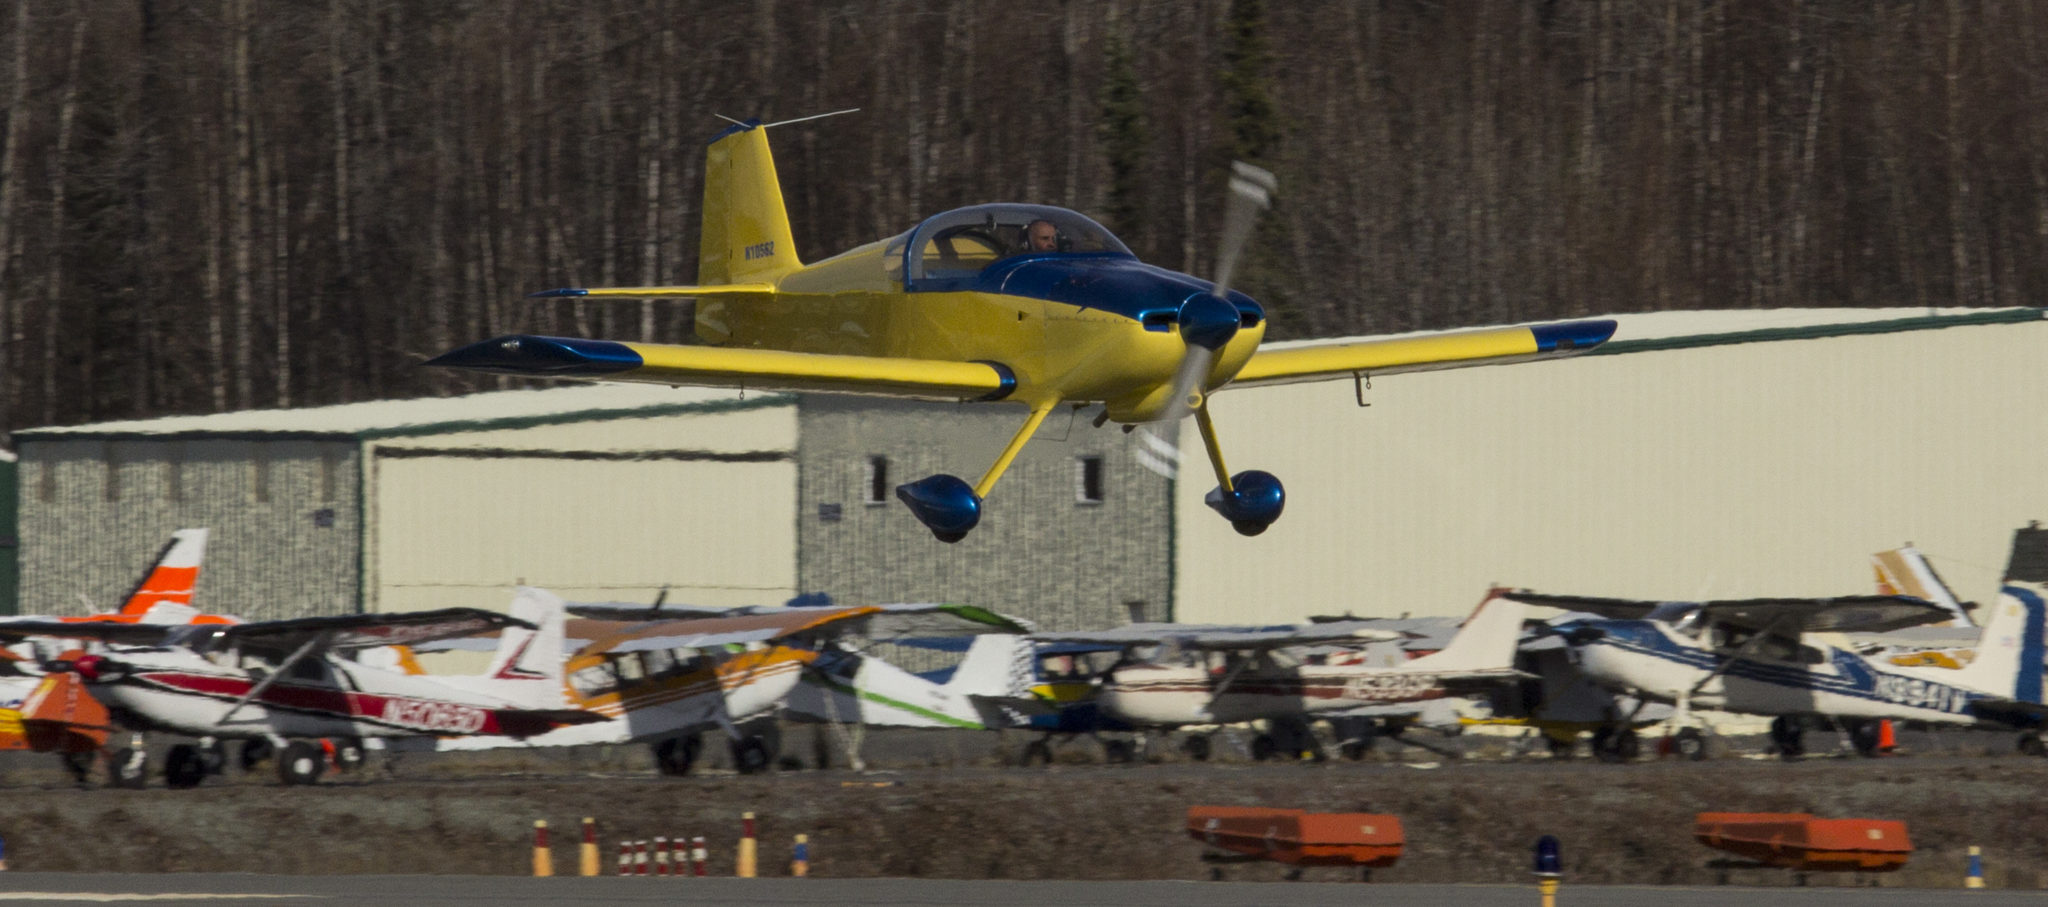 aviation in alaska A heartfelt thank you to our members, exhibitors, and volunteers who participated  in the 2018 great alaska aviation gathering your continuous support and.